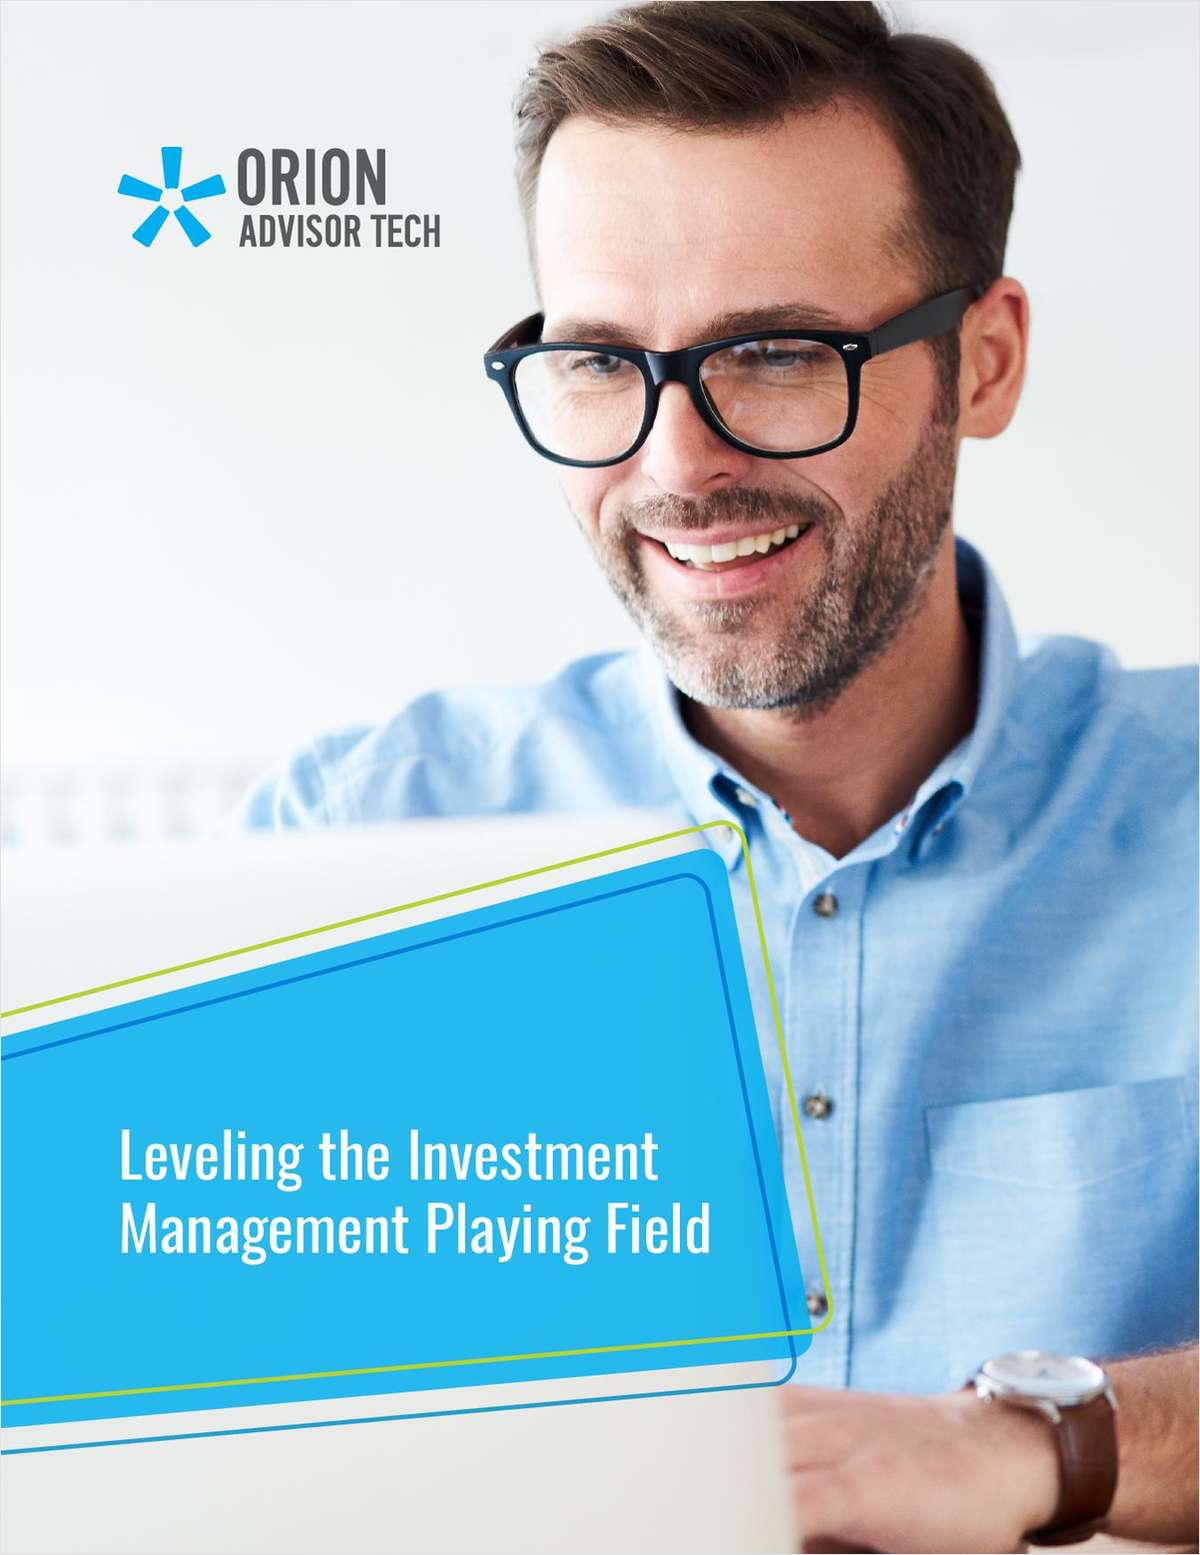 Leveling the Investment Management Playing Field